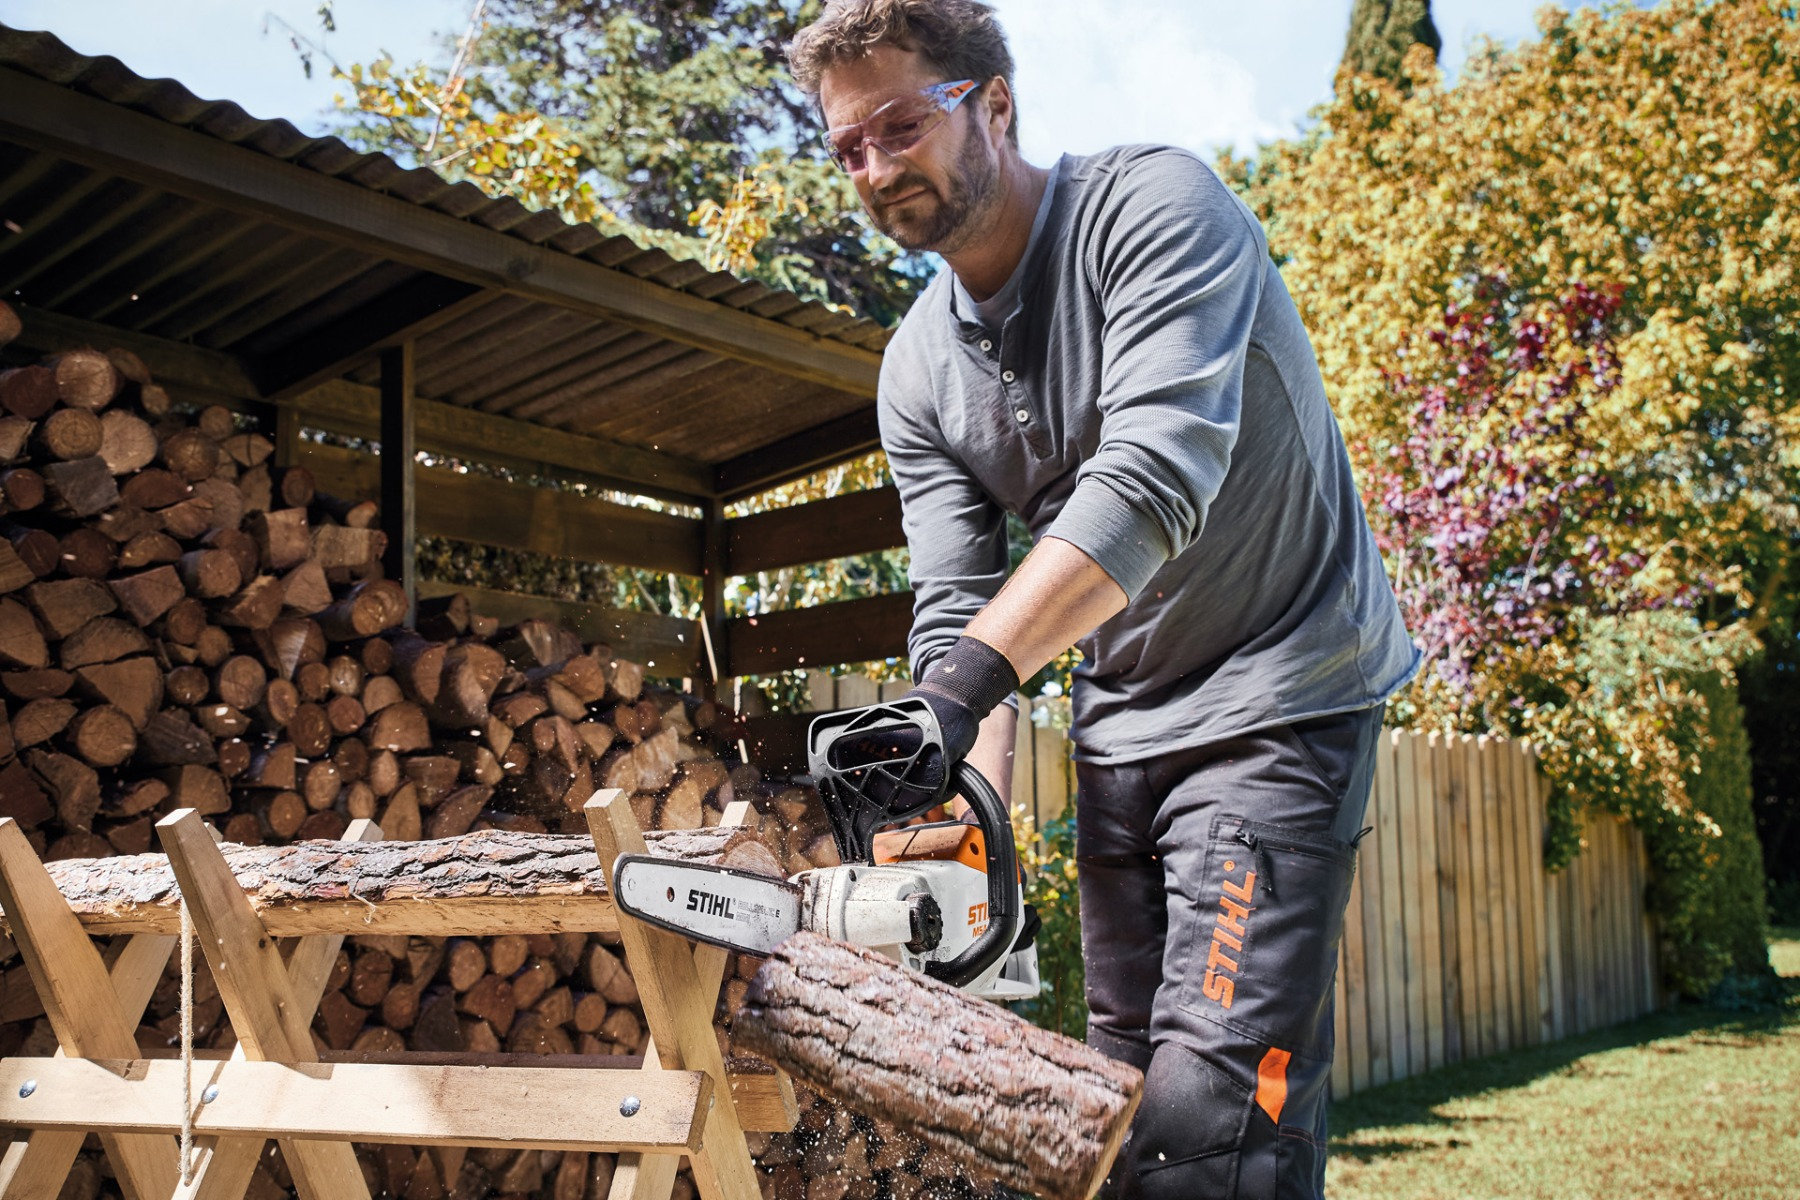 Using a STIHL Chainsaw with STIHL SHOP